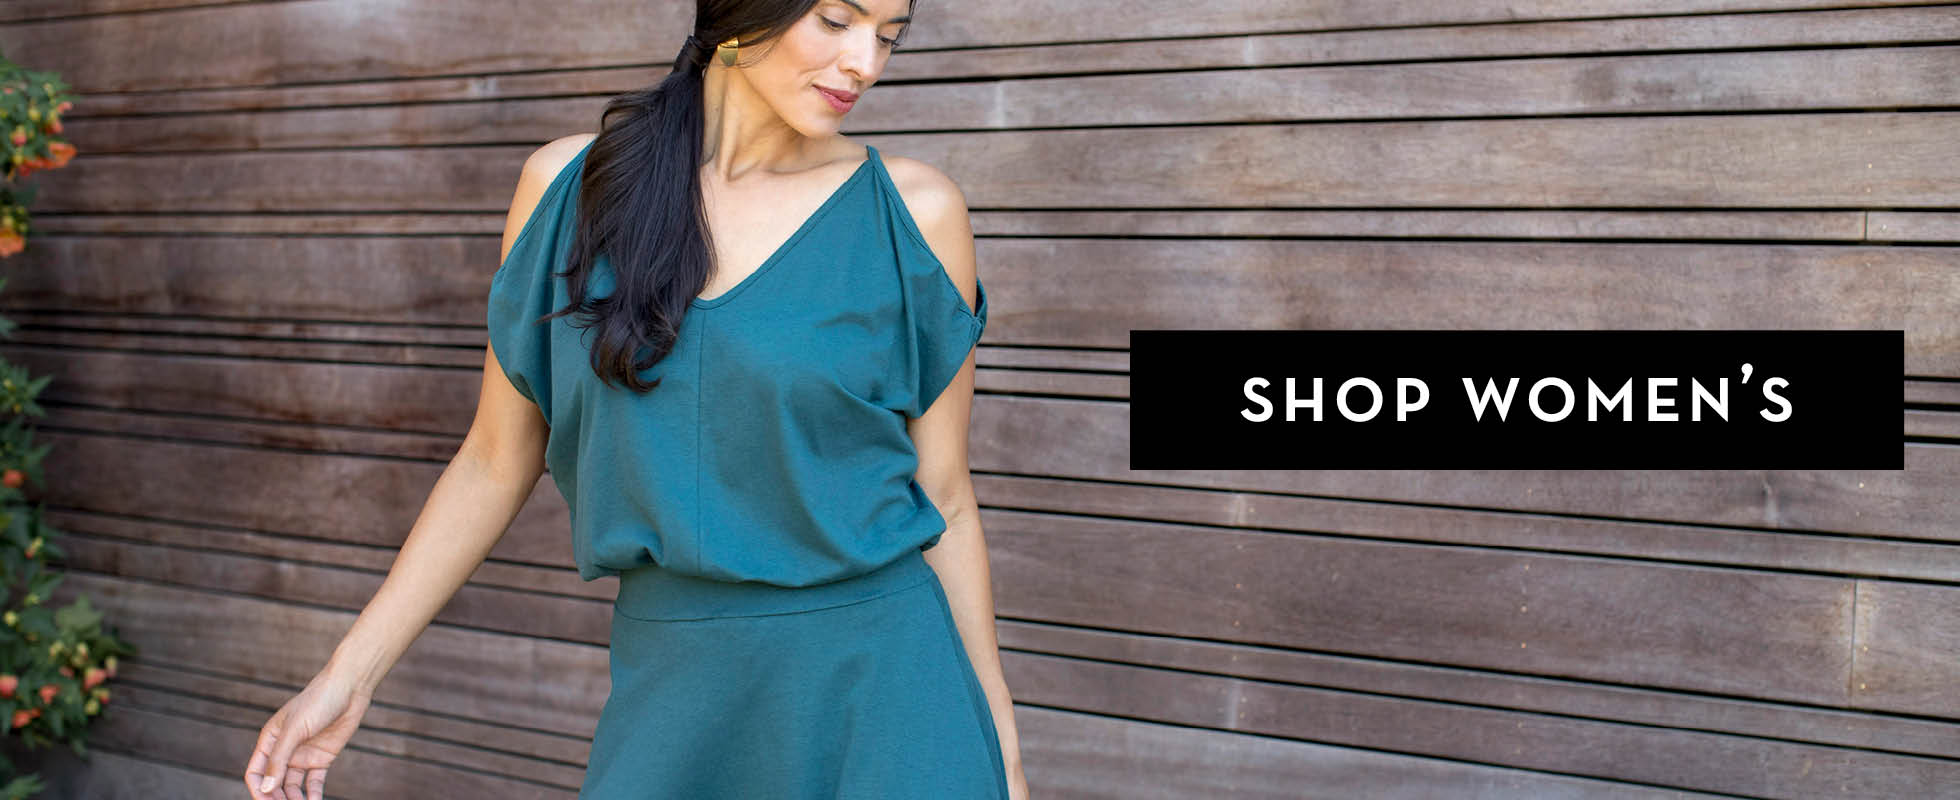 Shop Organic Clothing for Women